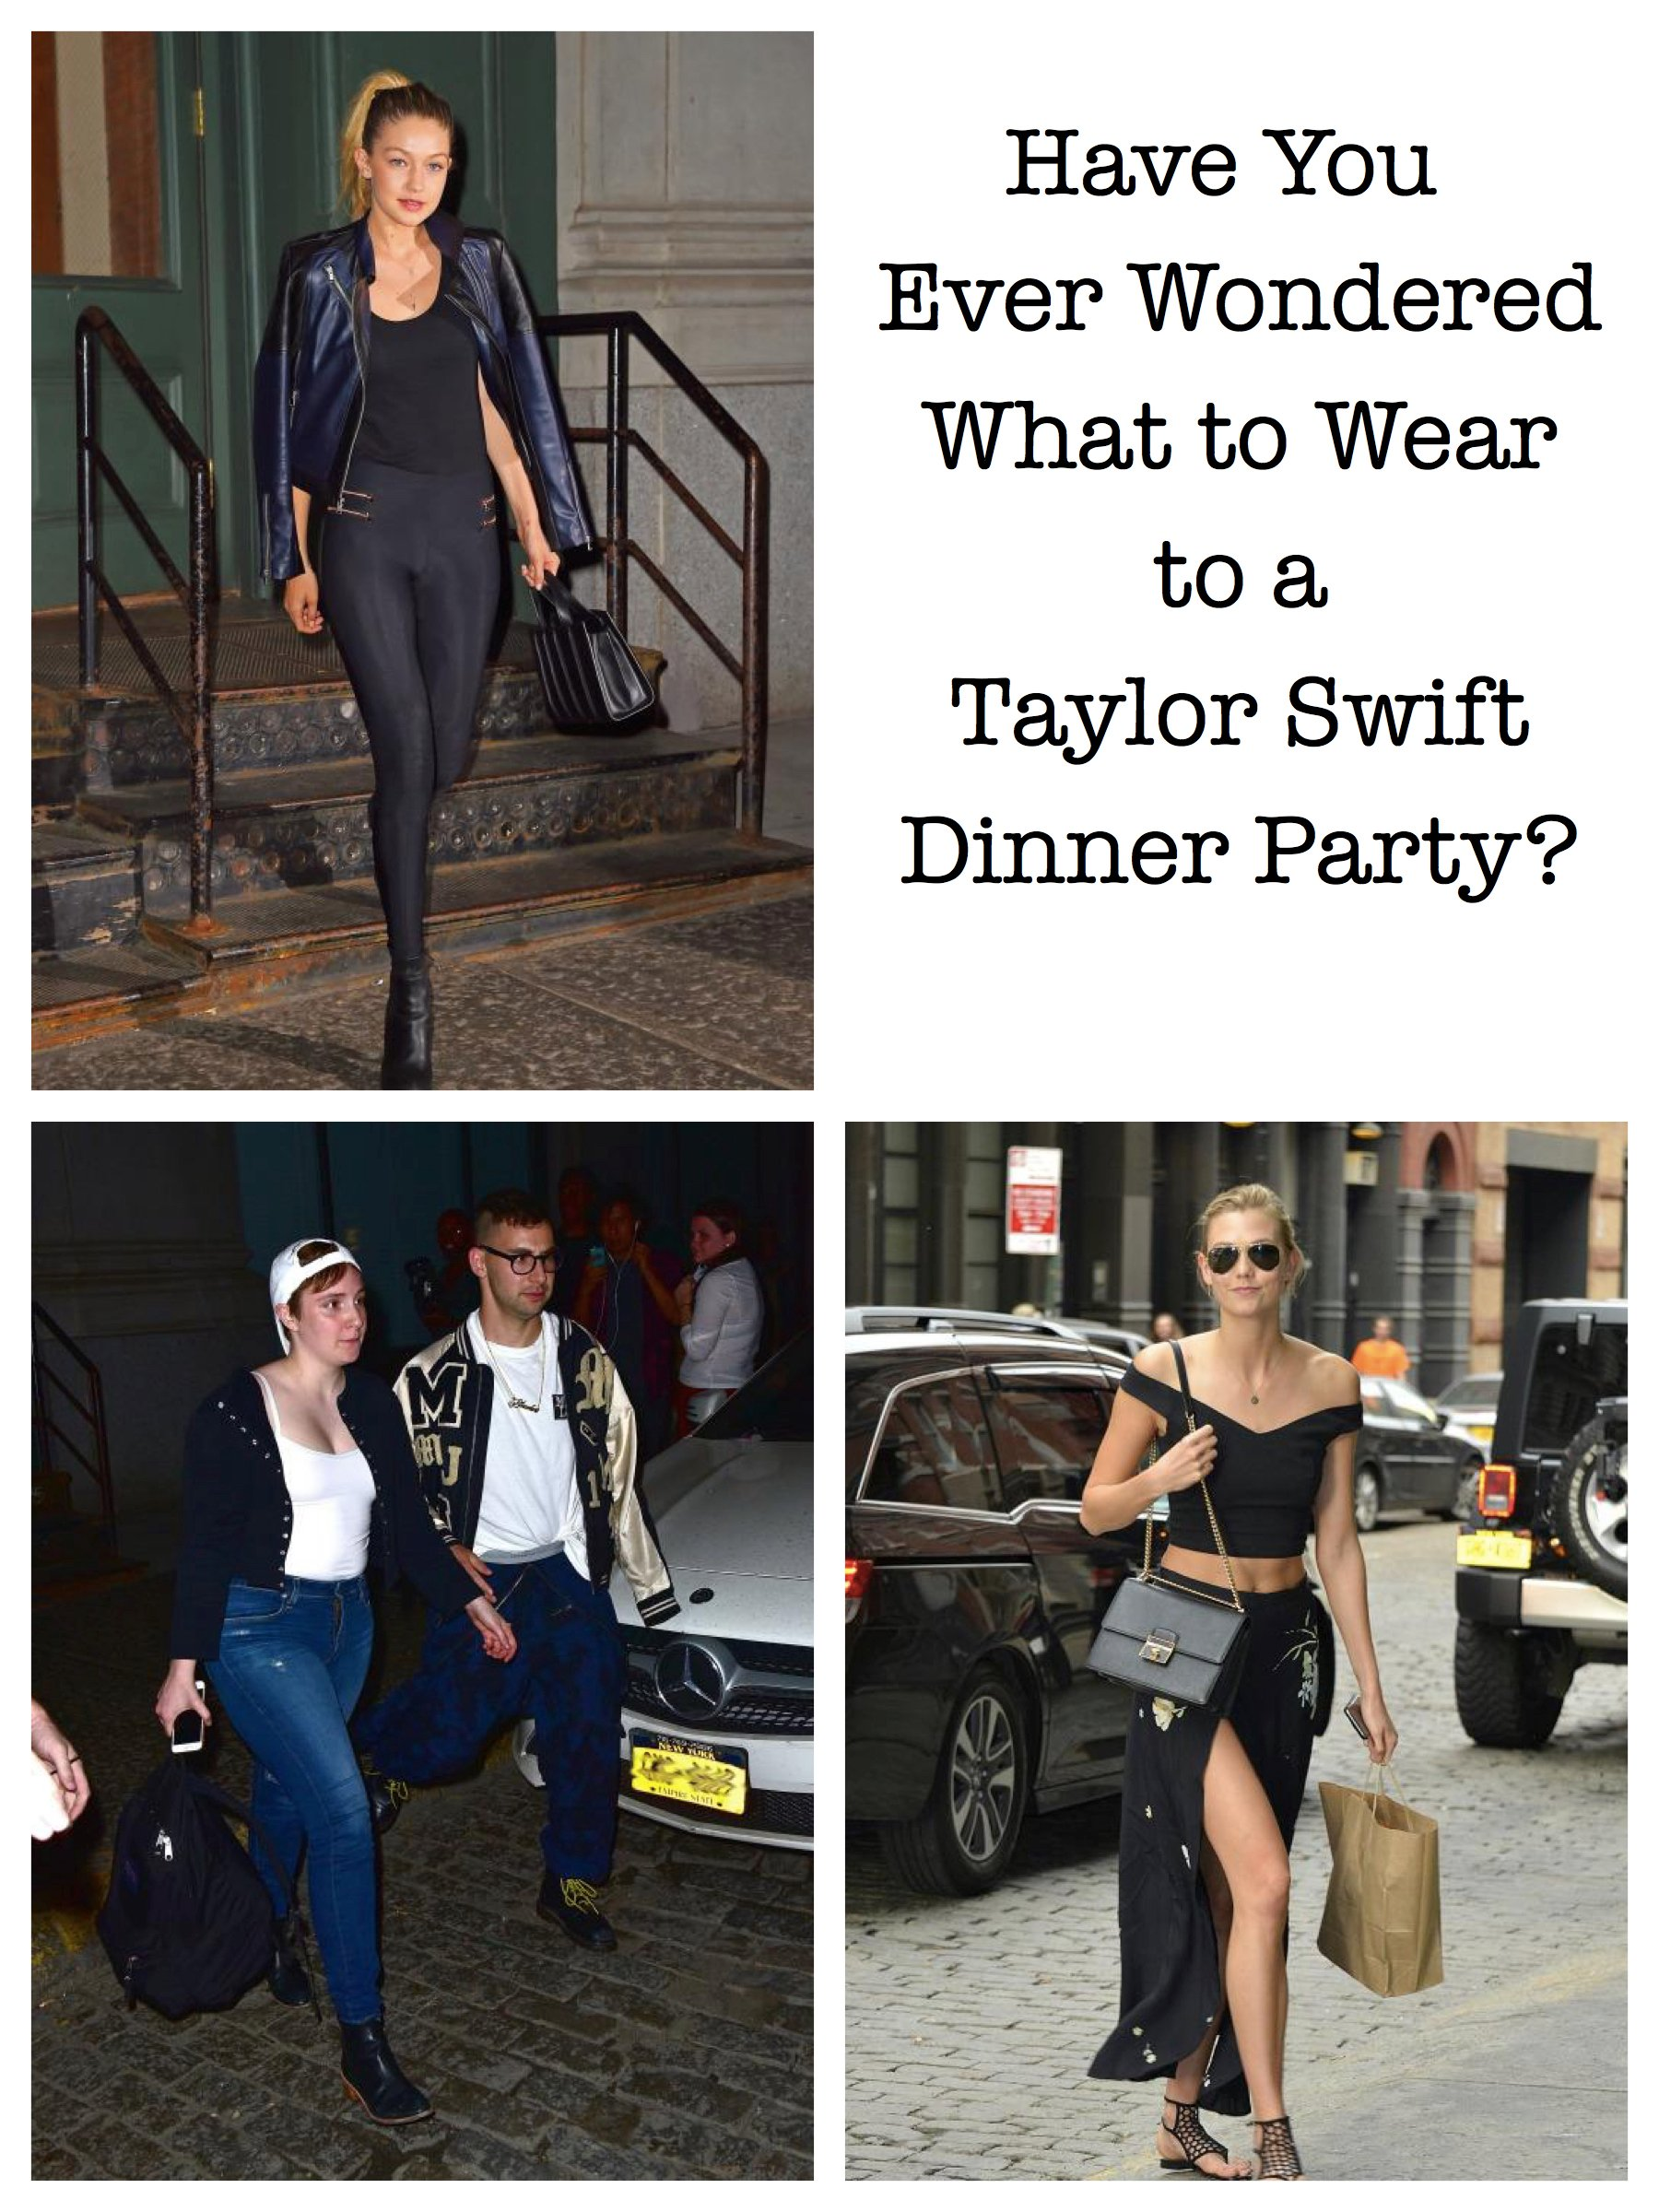 Have You Ever Wondered What to Wear to a Taylor Swift Dinner Party?